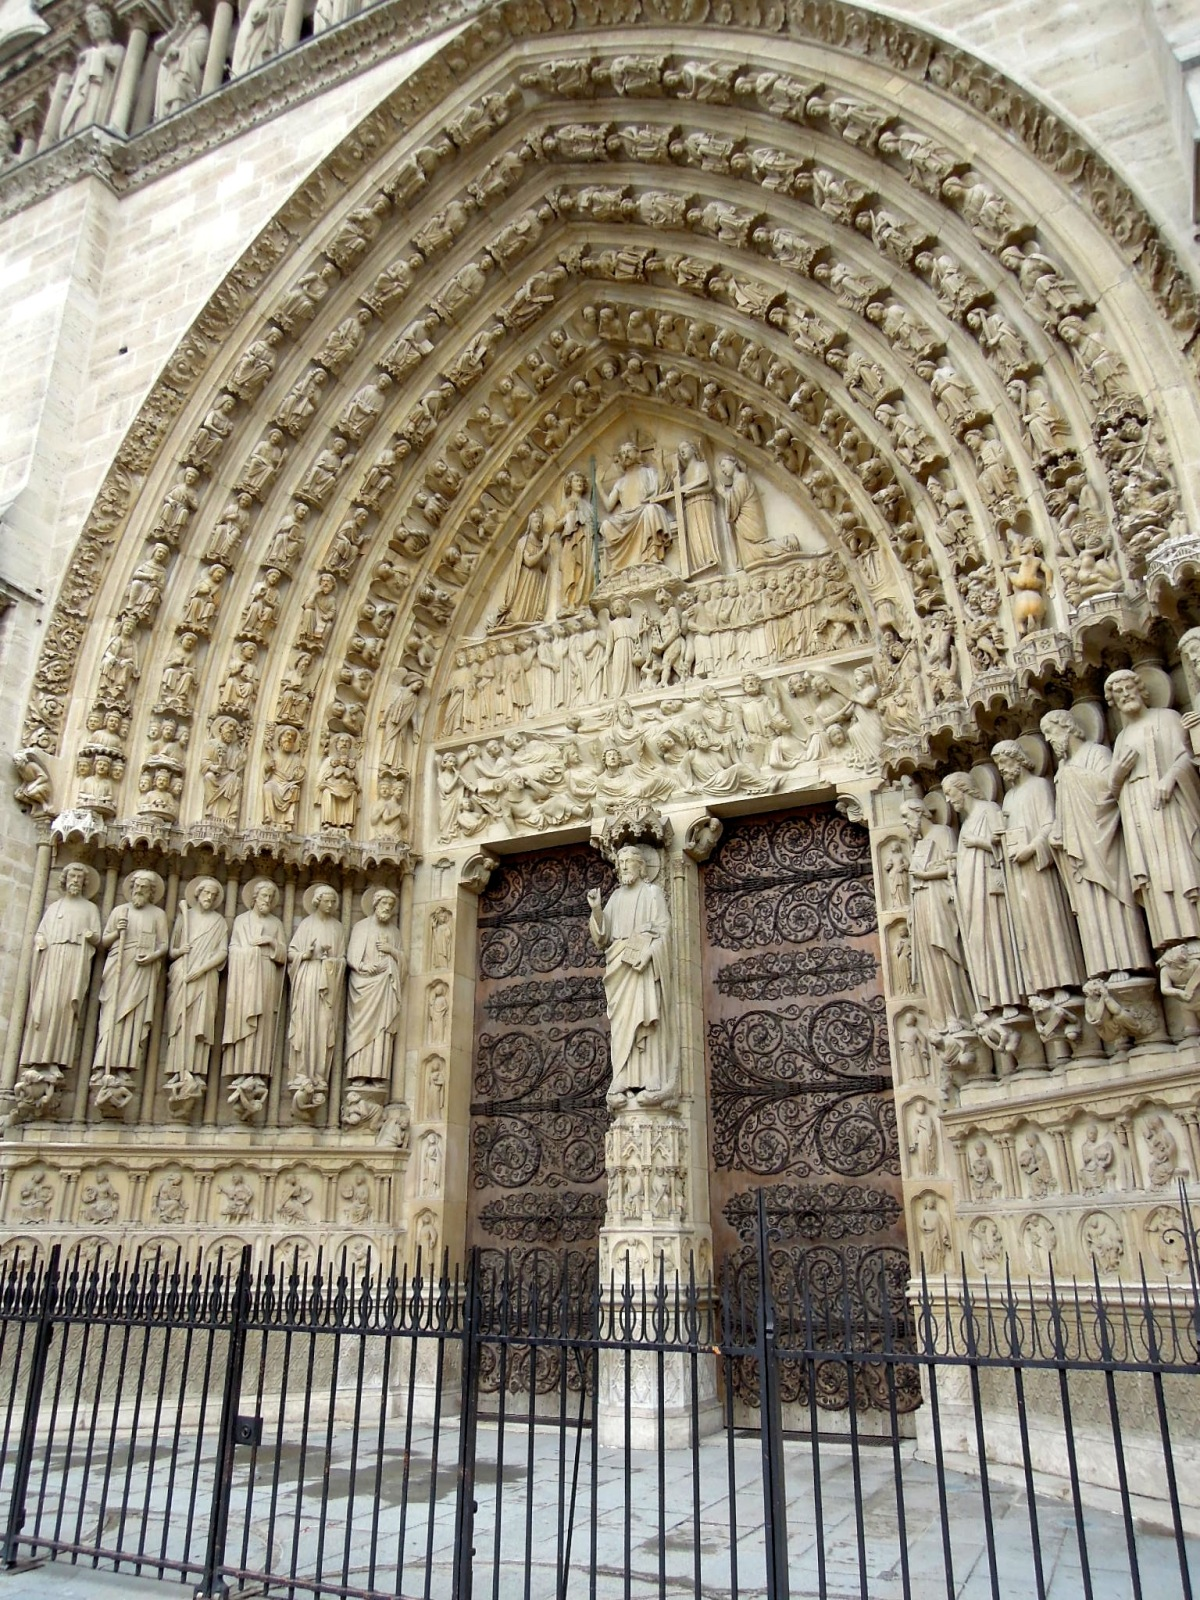 Magnificent carved arches and doorway of Notre Dame